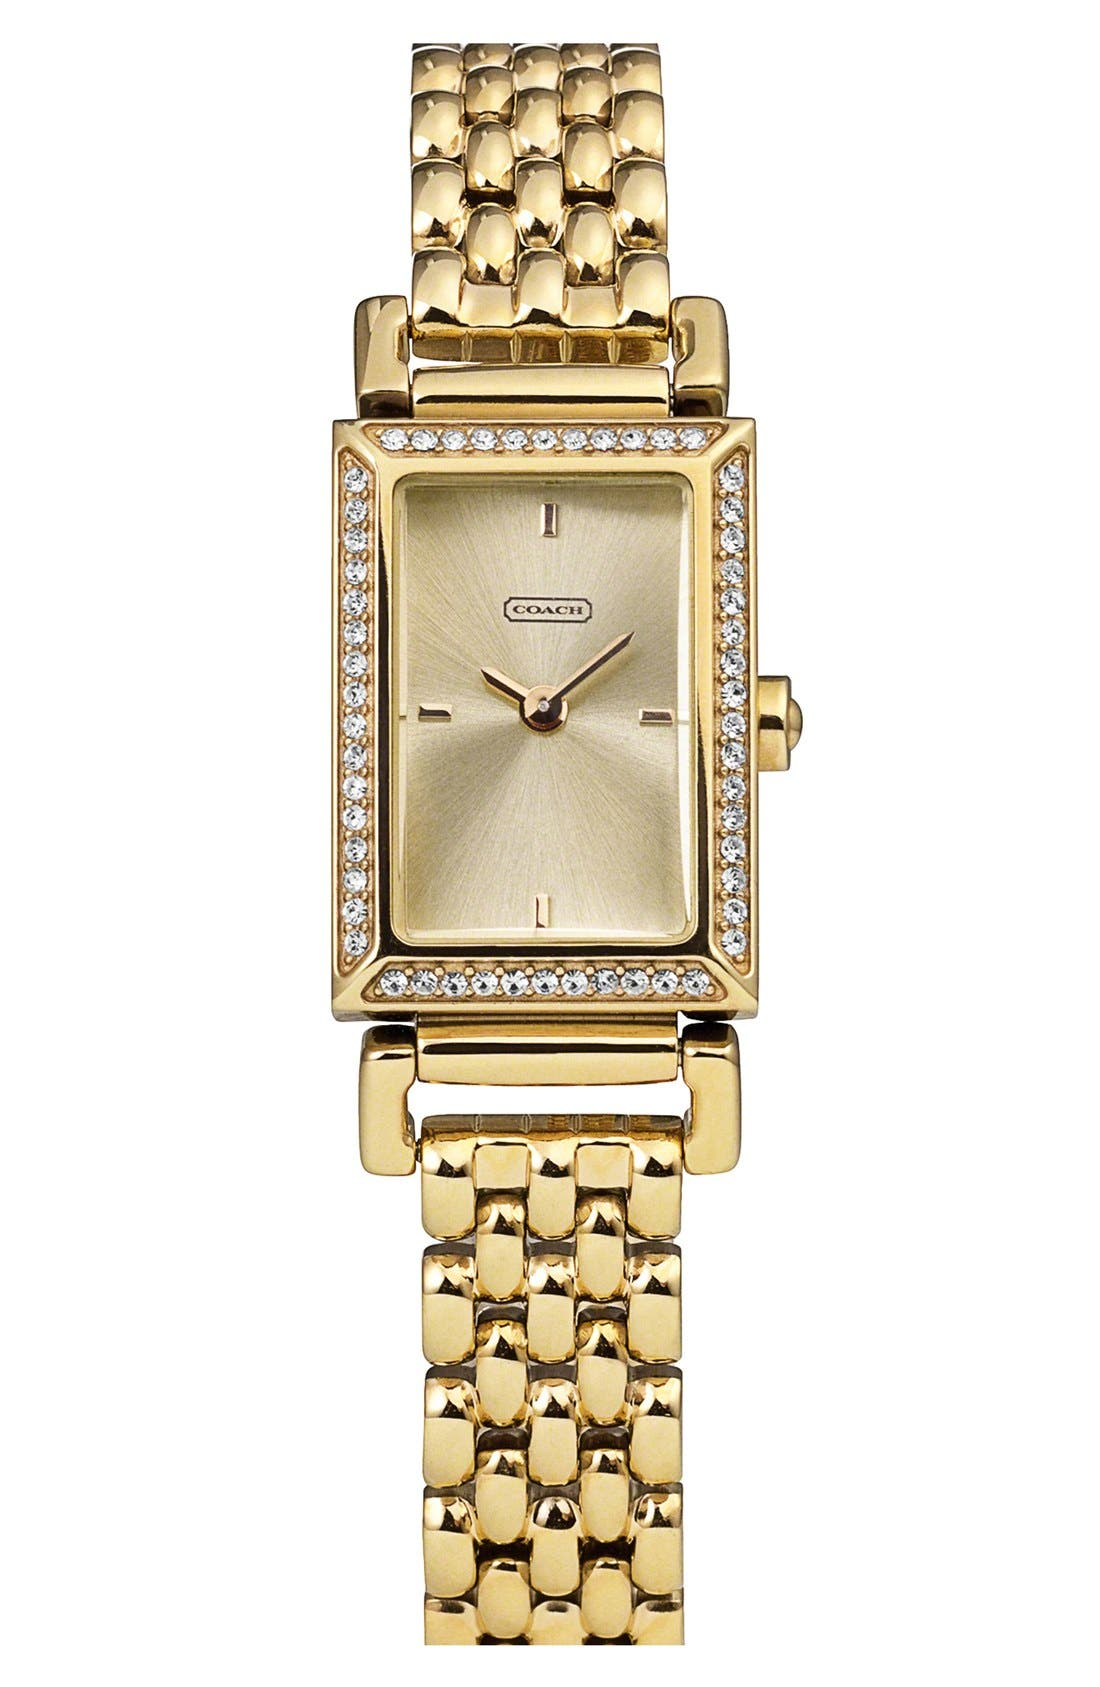 Main Image - COACH 'Madison' Crystal Bezel Bracelet Watch, 17mm x 30mm